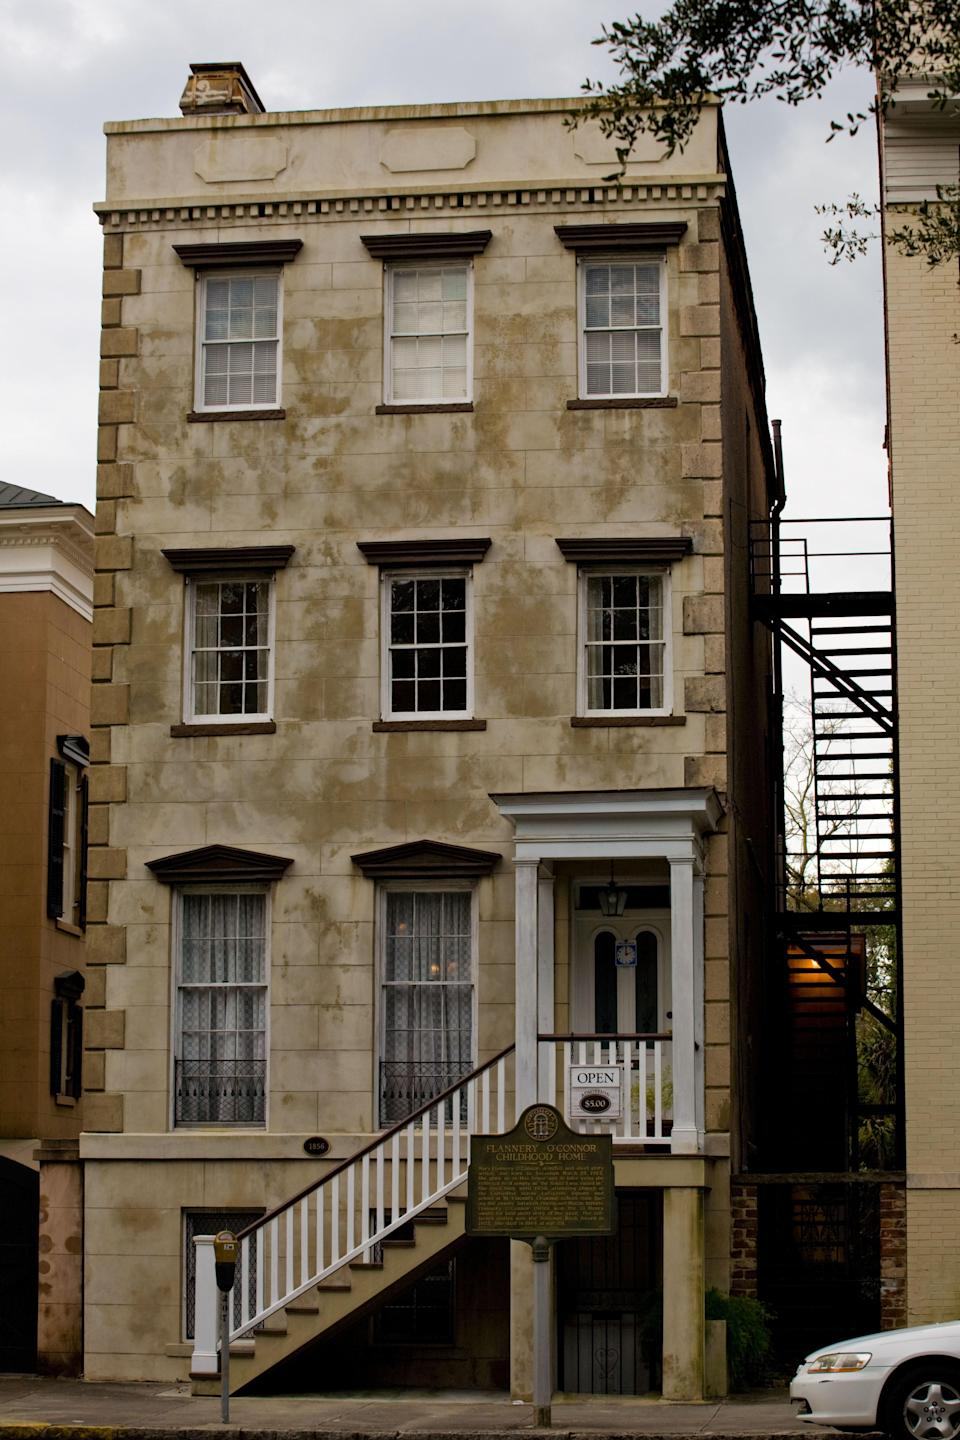 """<p><strong>What's this place all about?</strong> Savannah's favorite daughter, the great American writer Flannery O'Connor, was born in Savannah in 1925, and spent her childhood in a charming row house facing Lafayette Square. Though O'Connor didn't write her famed short story """"A Good Man Is Hard to Find"""" here, nor did she complete her classic novel """"Wise Blood,"""" her early years were not without significant accomplishment. Famously, young Mary Flannery taught a chicken to walk backwards in the walled backyard of this building. The eccentric spirit of O'Connor and her work infuses the museum today, which is just about as weird as you'd expect. It's also as fun as a restored Depression-era writer's home could possibly be. The O'Connor quote that figures prominently on its website—as well as some merch sold inside—sums it up: """"Whenever I'm asked why Southern writers particularly have a penchant for writing about freaks, I say it is because we are still able to recognize one.""""</p> <p><strong>What will we see here?</strong> Built in 1856, the multilevel Greek Revival home is filled with artifacts from O'Connor's life as well as period decor, including refurbished chandeliers in the parlor and original heart-pine flooring. You'll see O'Connor's crib, some drawings she made in college, and a room of rare books; a rear kitchen overlooks the beautiful backyard garden, and front windows afford a view of the Cathedral of Saint John the Baptist, where O'Connor attended church. There aren't rotating exhibits, but the museum does keep up a robust schedule of lectures and readings, recently updated to become virtual events. If you're here in late March, don't miss the museum's celebration of O'Connor's birthday, which features a parade and street fair out front in Lafayette Square. A pure expression of the old weird Savannah, the event includes a raucous marching band, a peacock-decorated birthday cake, folks in costume, and a game of chickenshit bingo. What's chickenshit bingo? Y"""